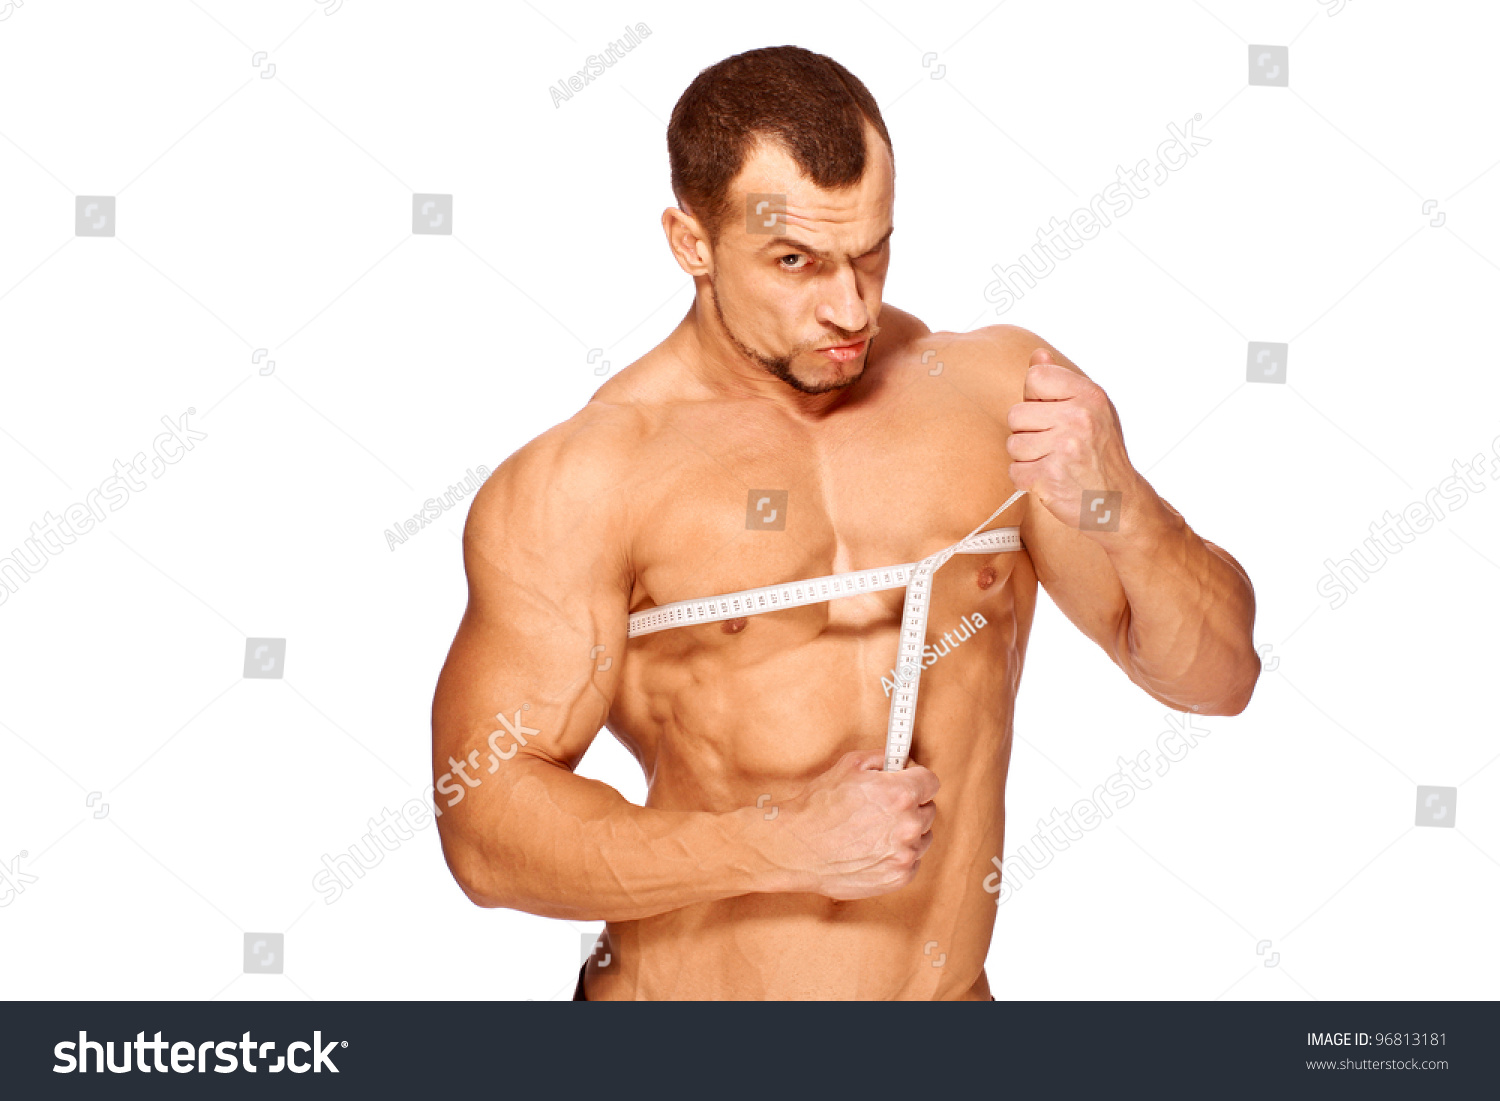 Muscular Tanned Male Body Parts Being Stock Photo Edit Now